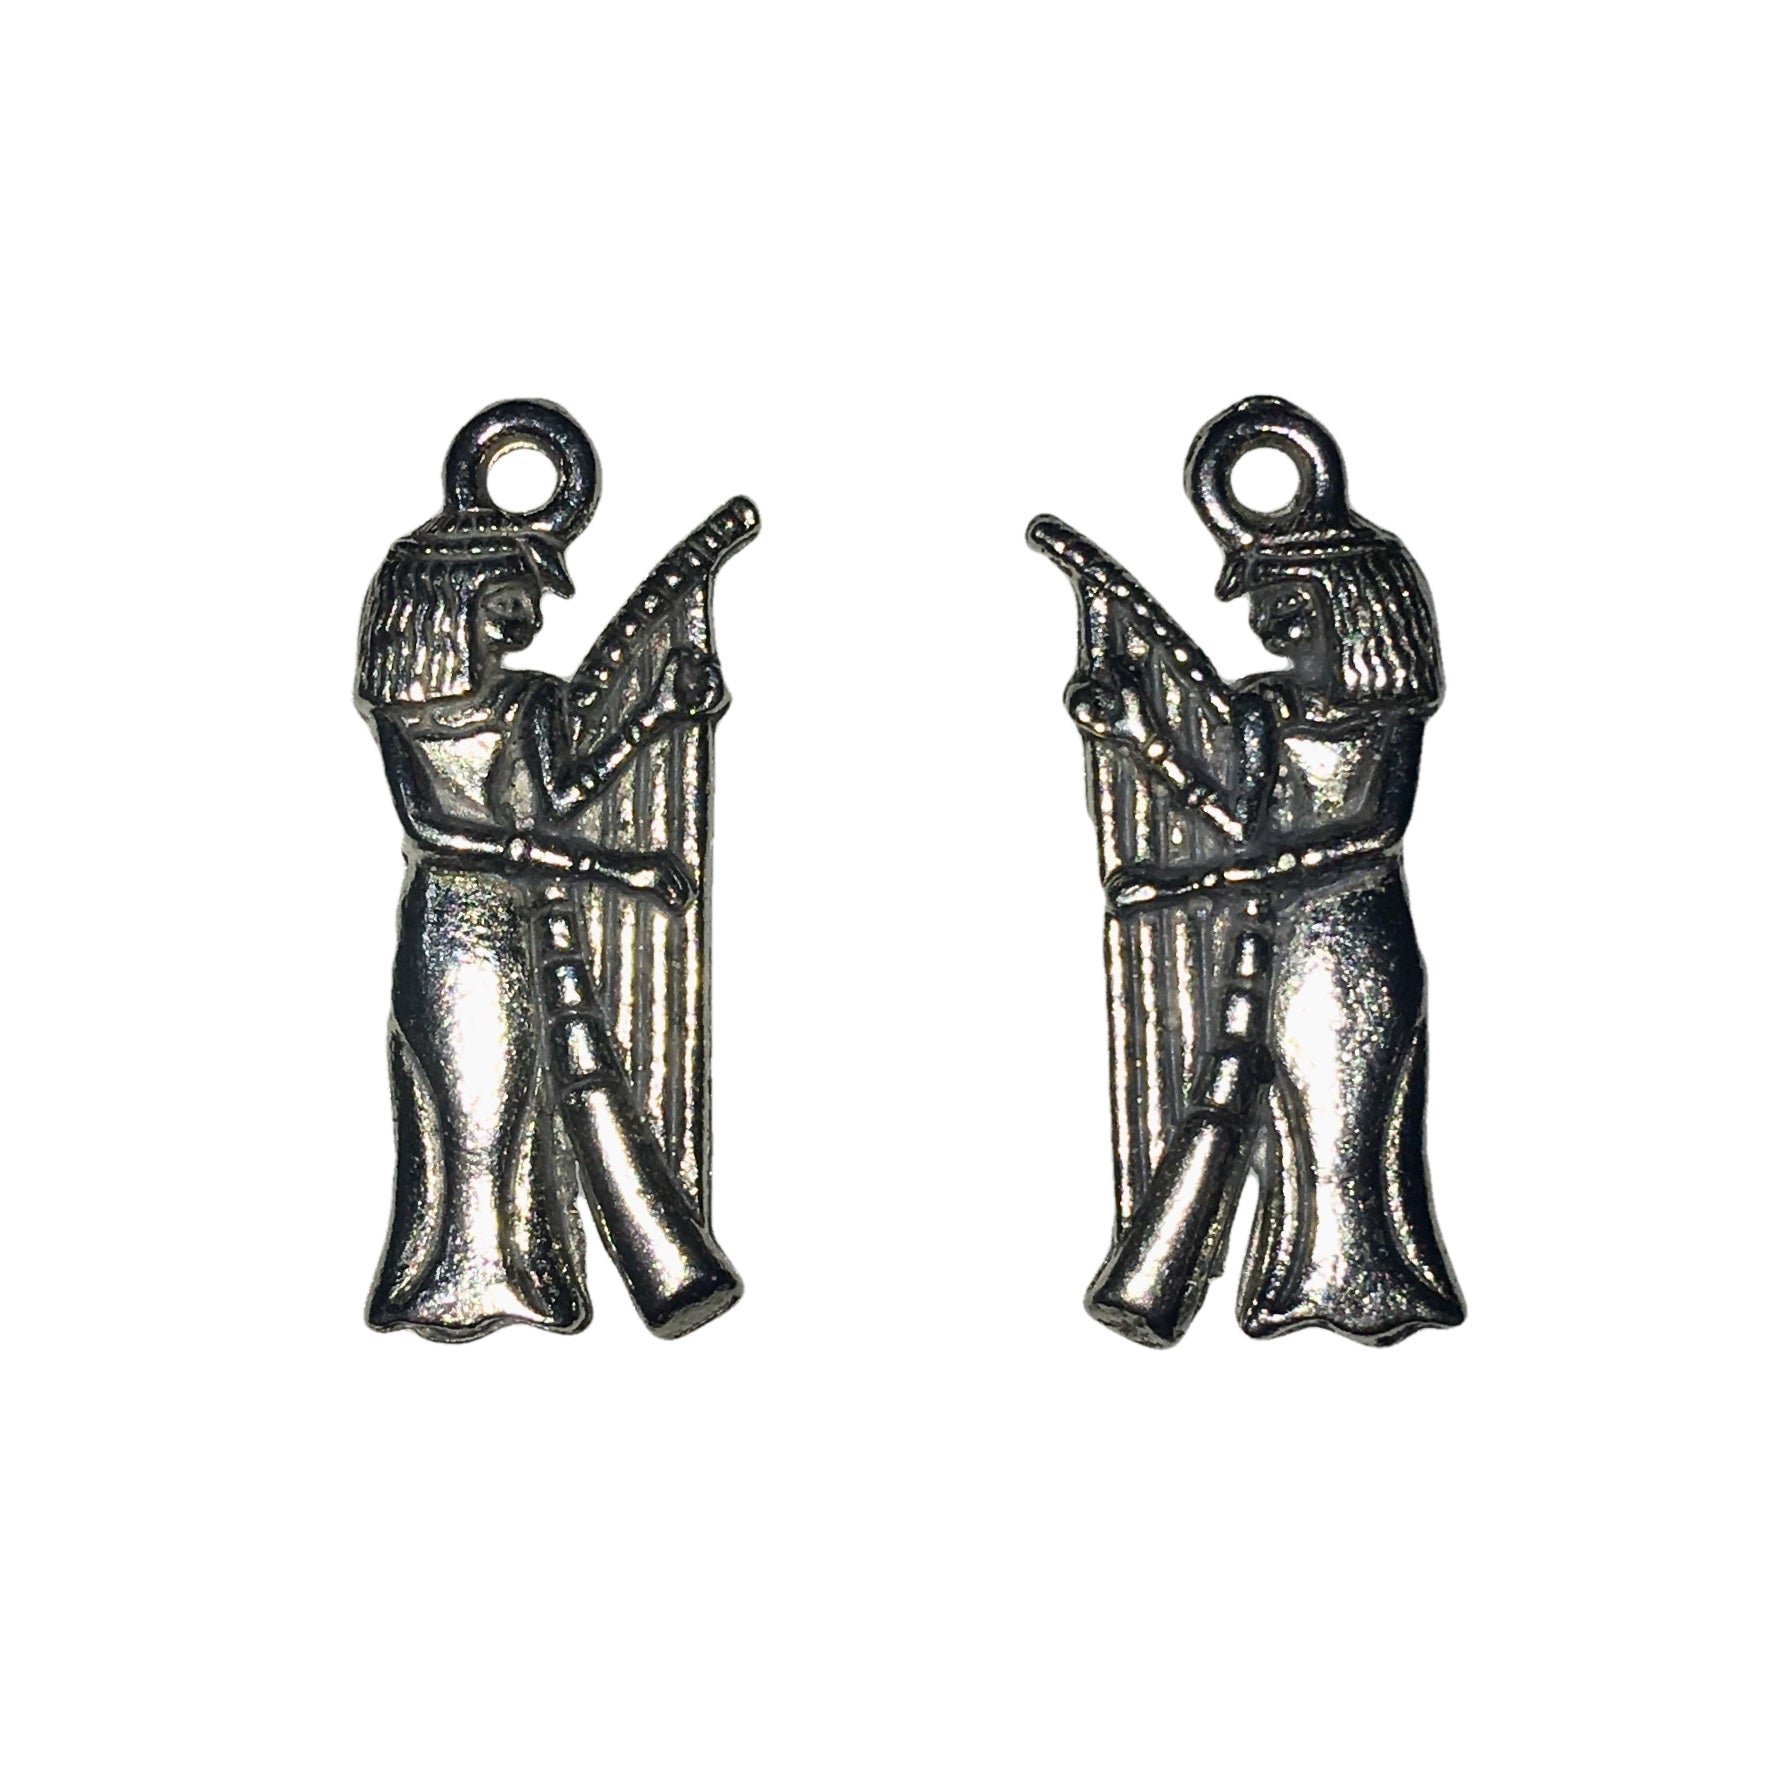 Egyptian Musician Charms - Qty of 5 - Lead Free Pewter Silver - American Made